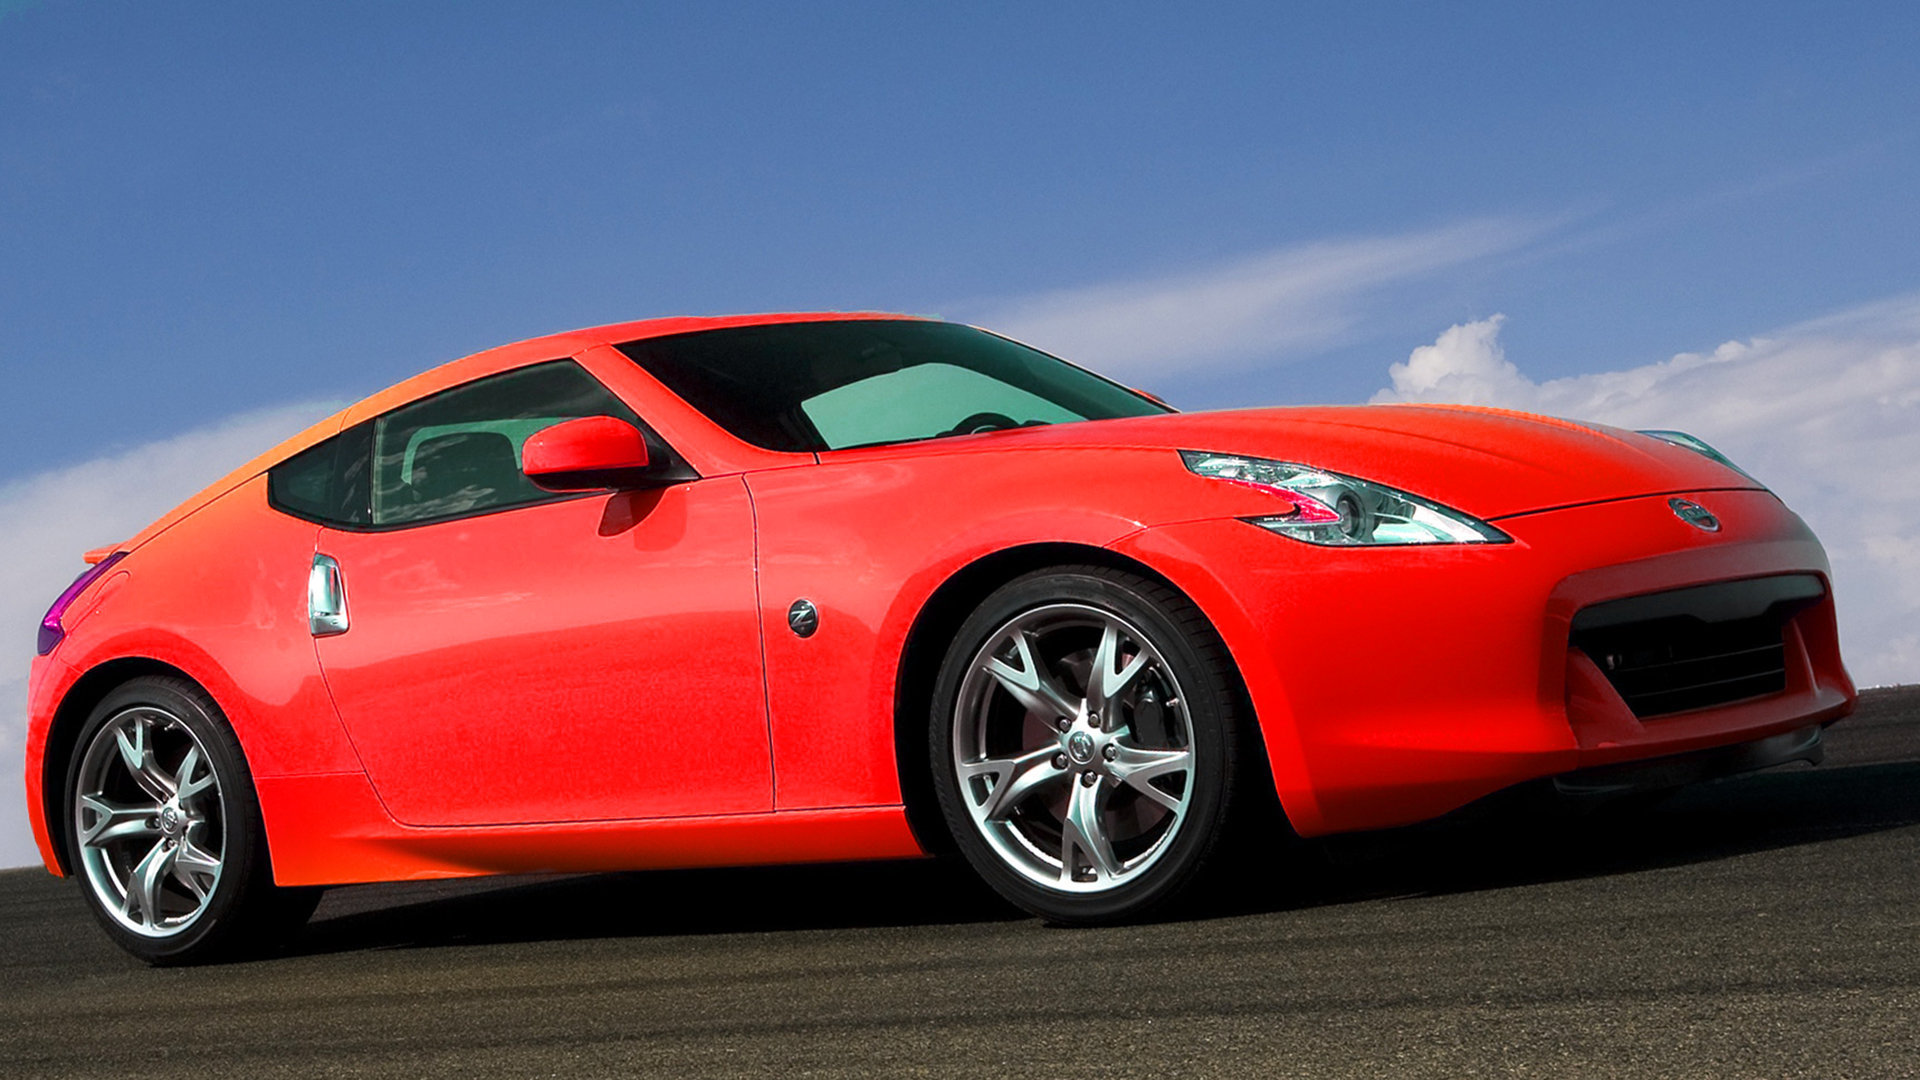 2013 370z wallpaper - photo #22